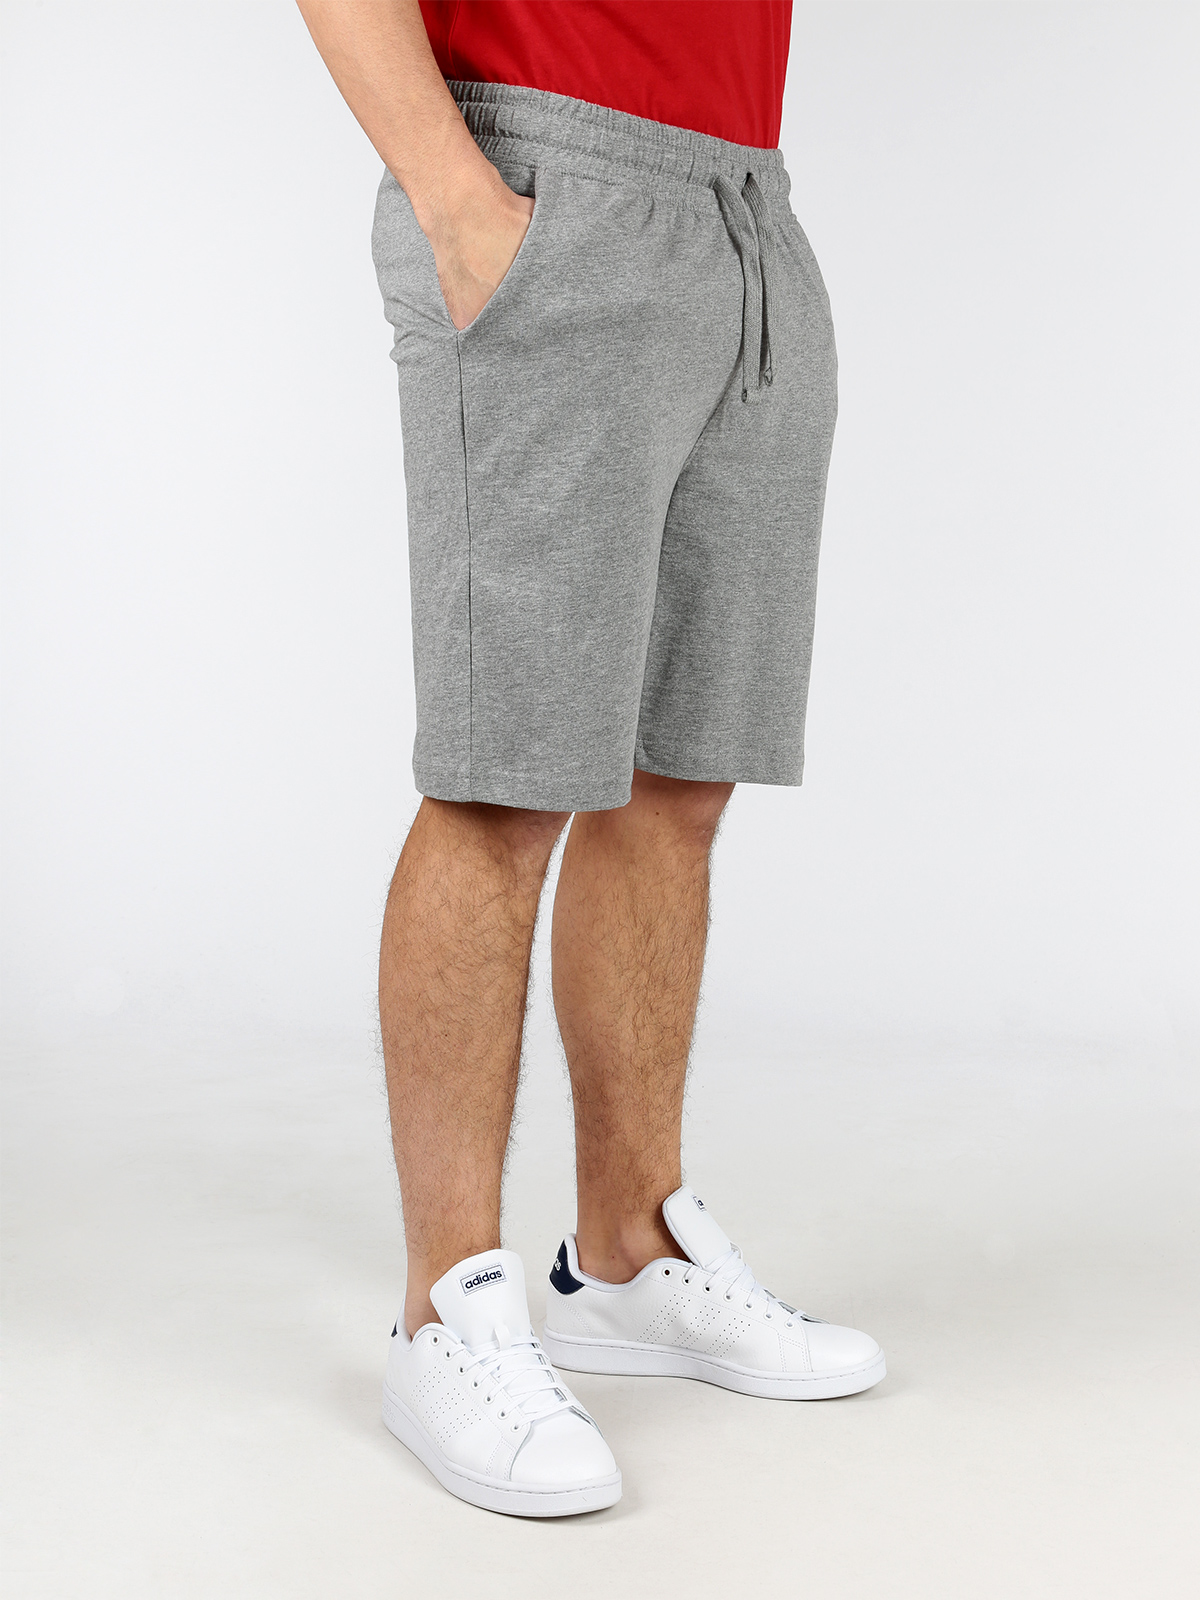 COVERI MOVING Men's Casual Sports Shorts